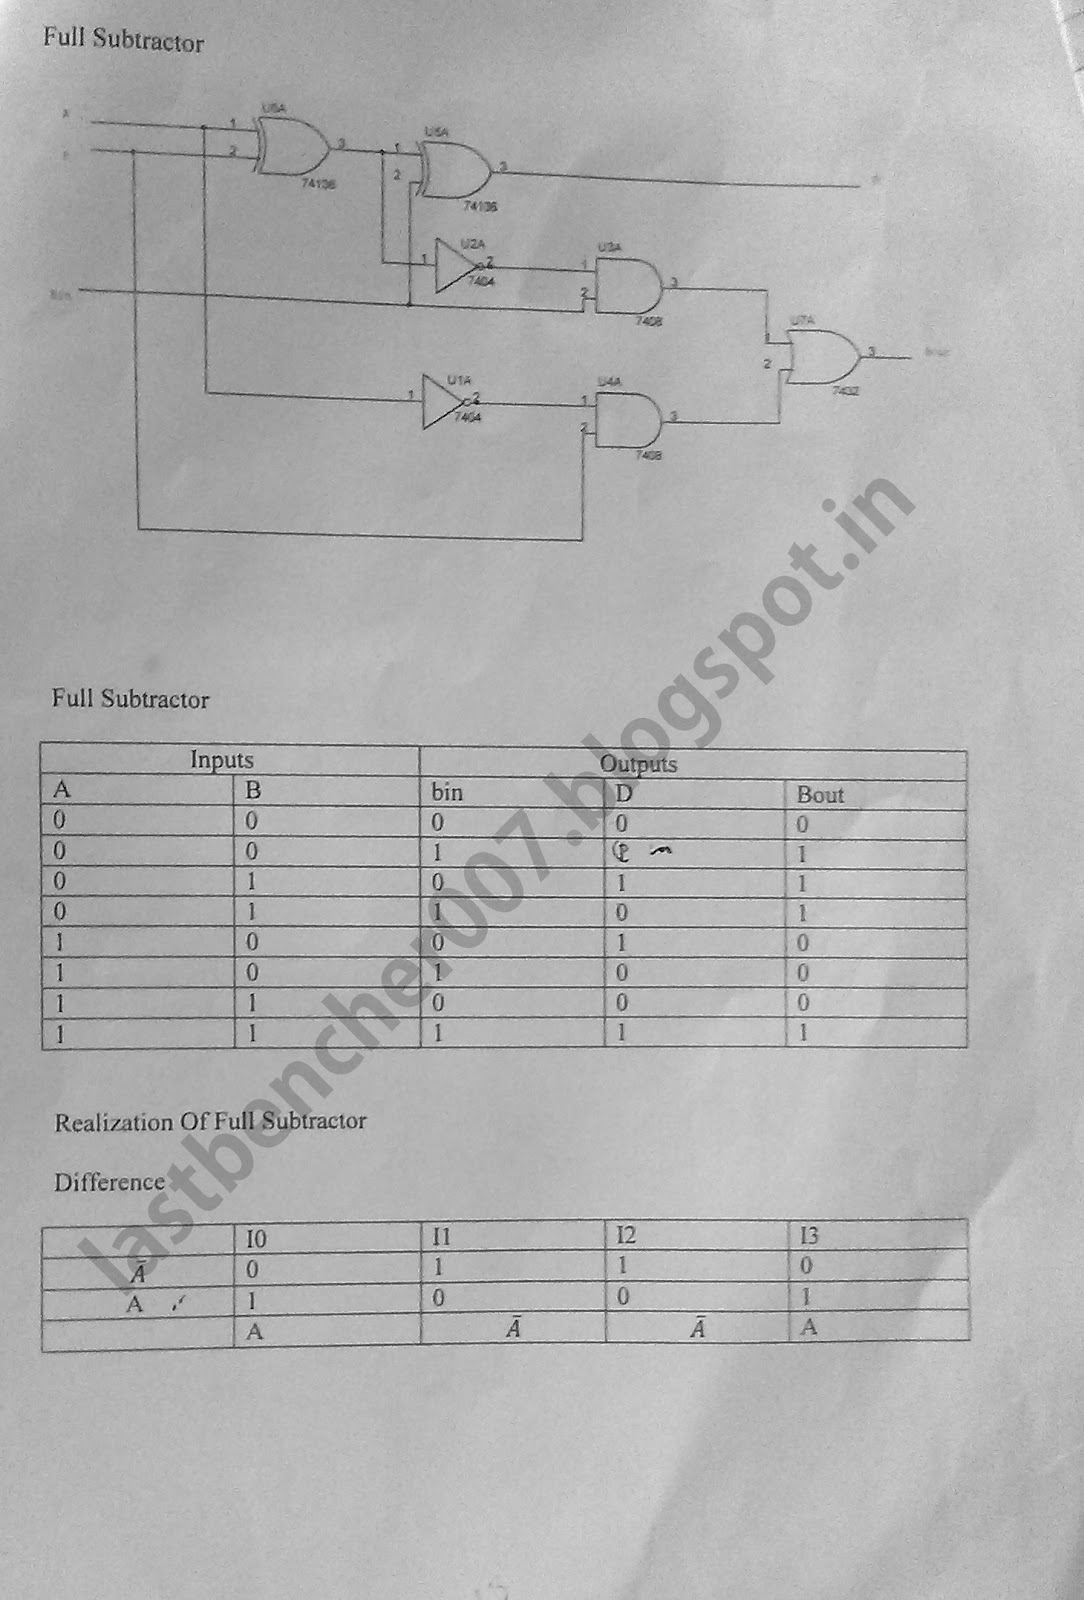 Subtractor Using 41 Mux The Last Bencher General Block Diagram Of Multiplexer Posted 29th September 2012 By